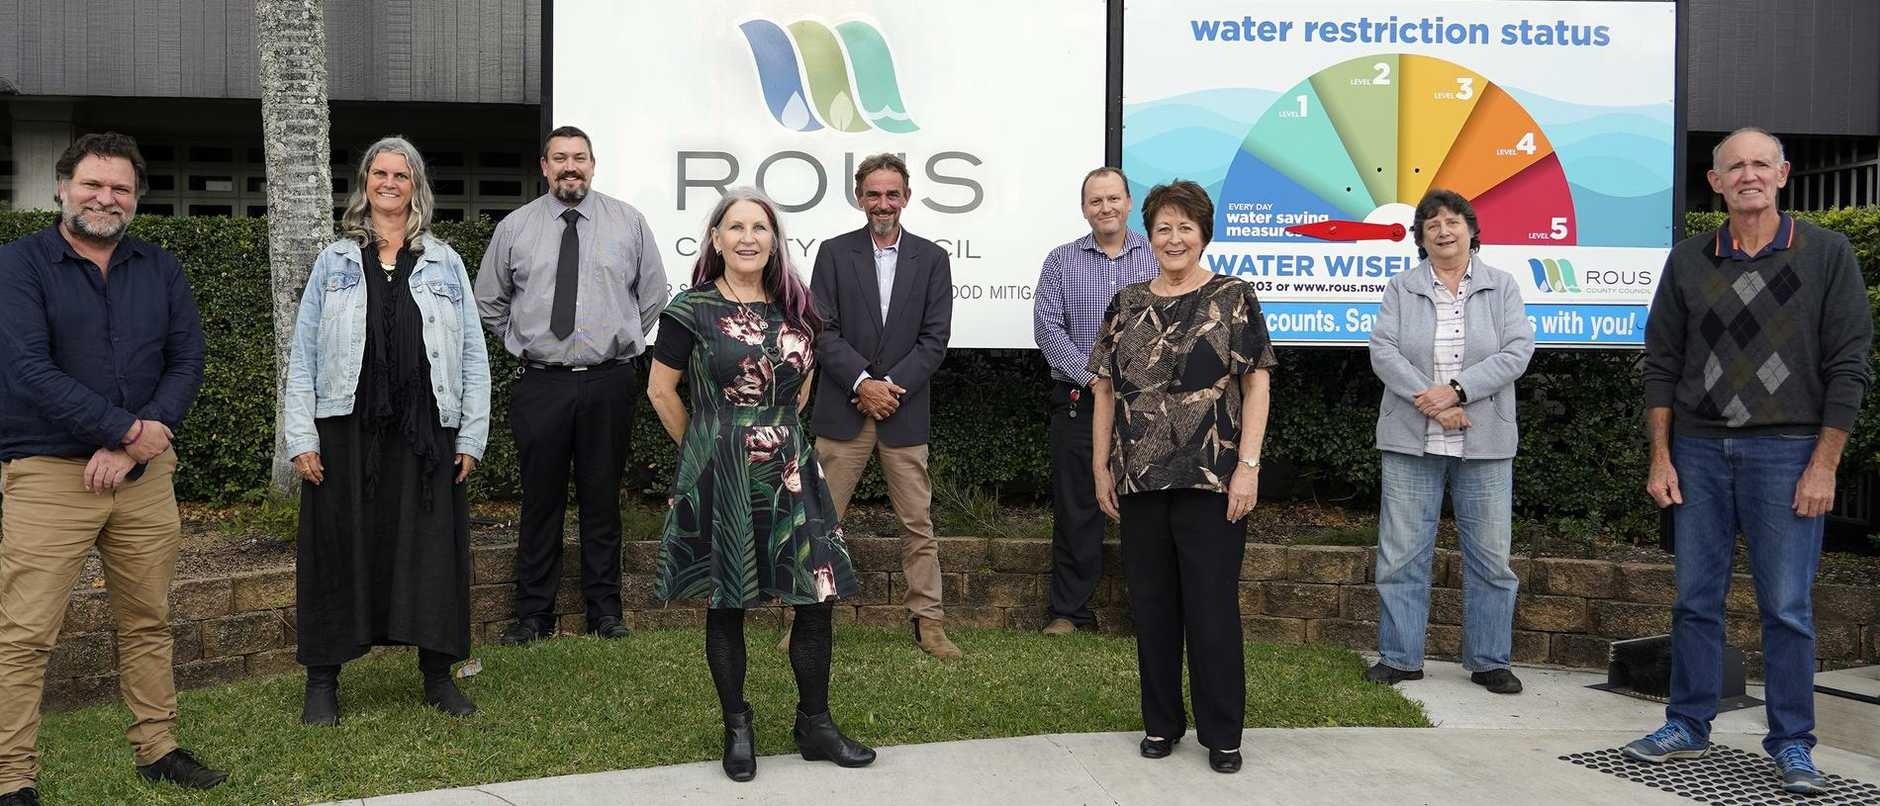 COUNCILLORS: From left, present at the meeting were Cr Simon Richardson, Cr Vanessa Ekins, Phillip Rudd (general manager), Cr Sandra Humphrys, Cr Keith Williams (chair), Michael McKenzie (Future Water project manager), Cr Sharon Cadwallader (deputy chair), Cr Darlene Cook and Cr Robert Mustow.